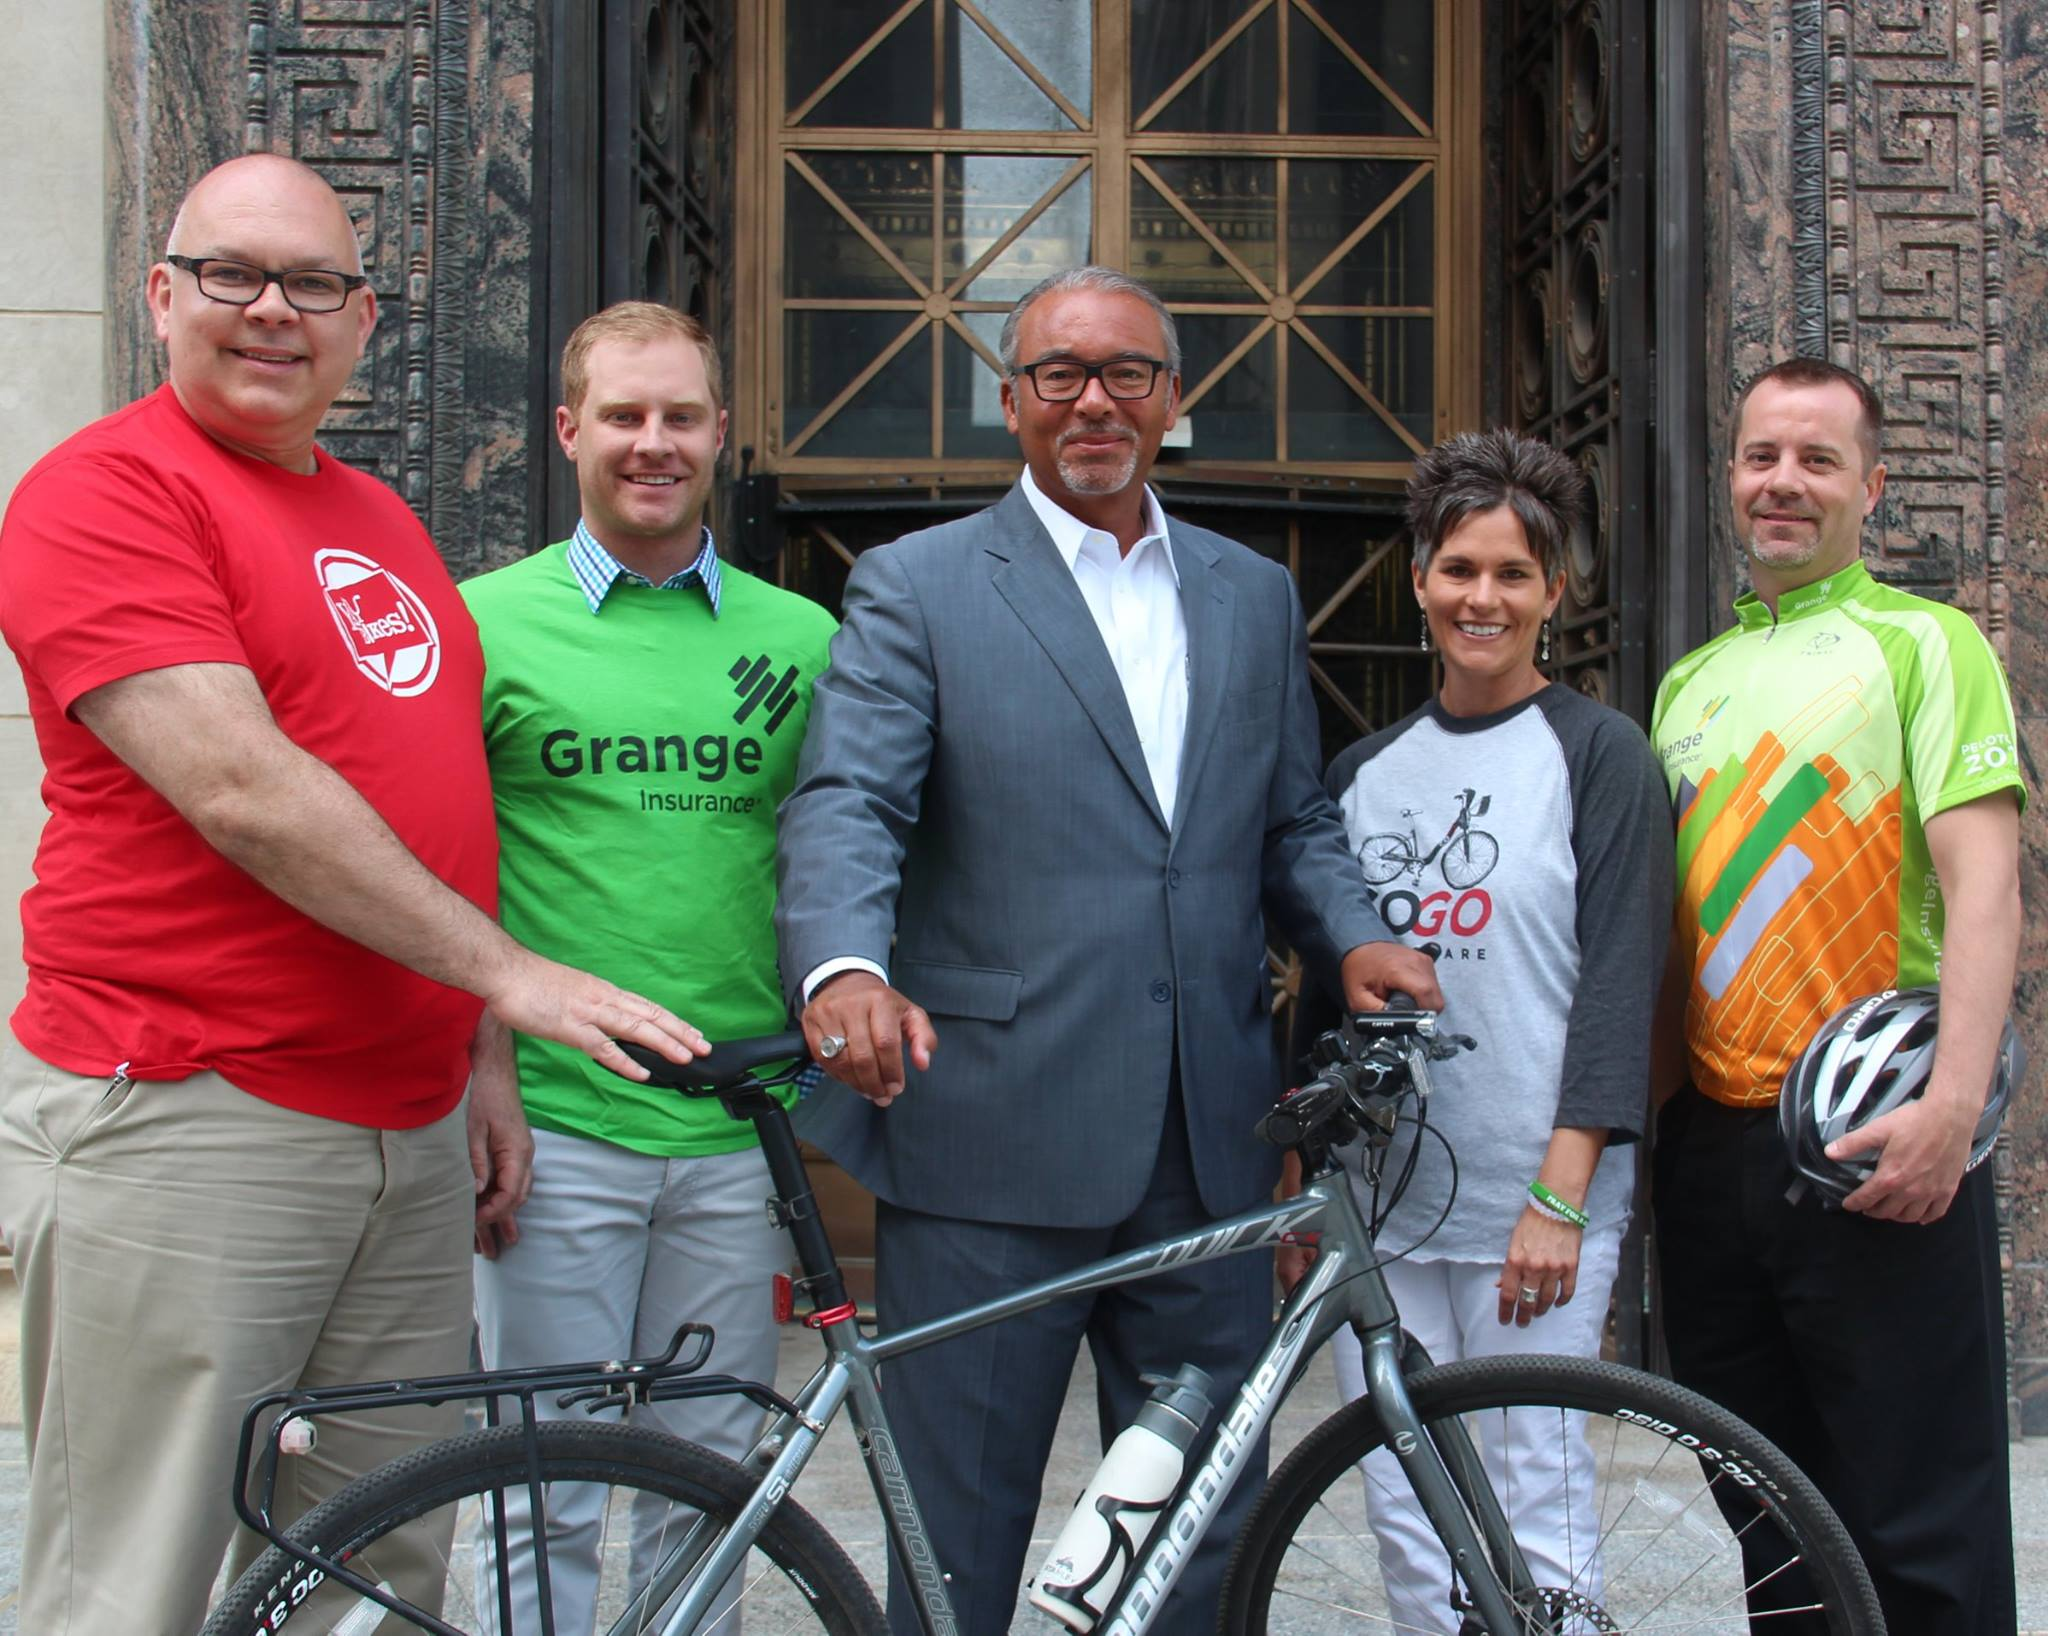 """With former Columbus Mayor Michael """"Bikin' Mike"""" Coleman, promoting bicycling alongside several Grange colleagues."""